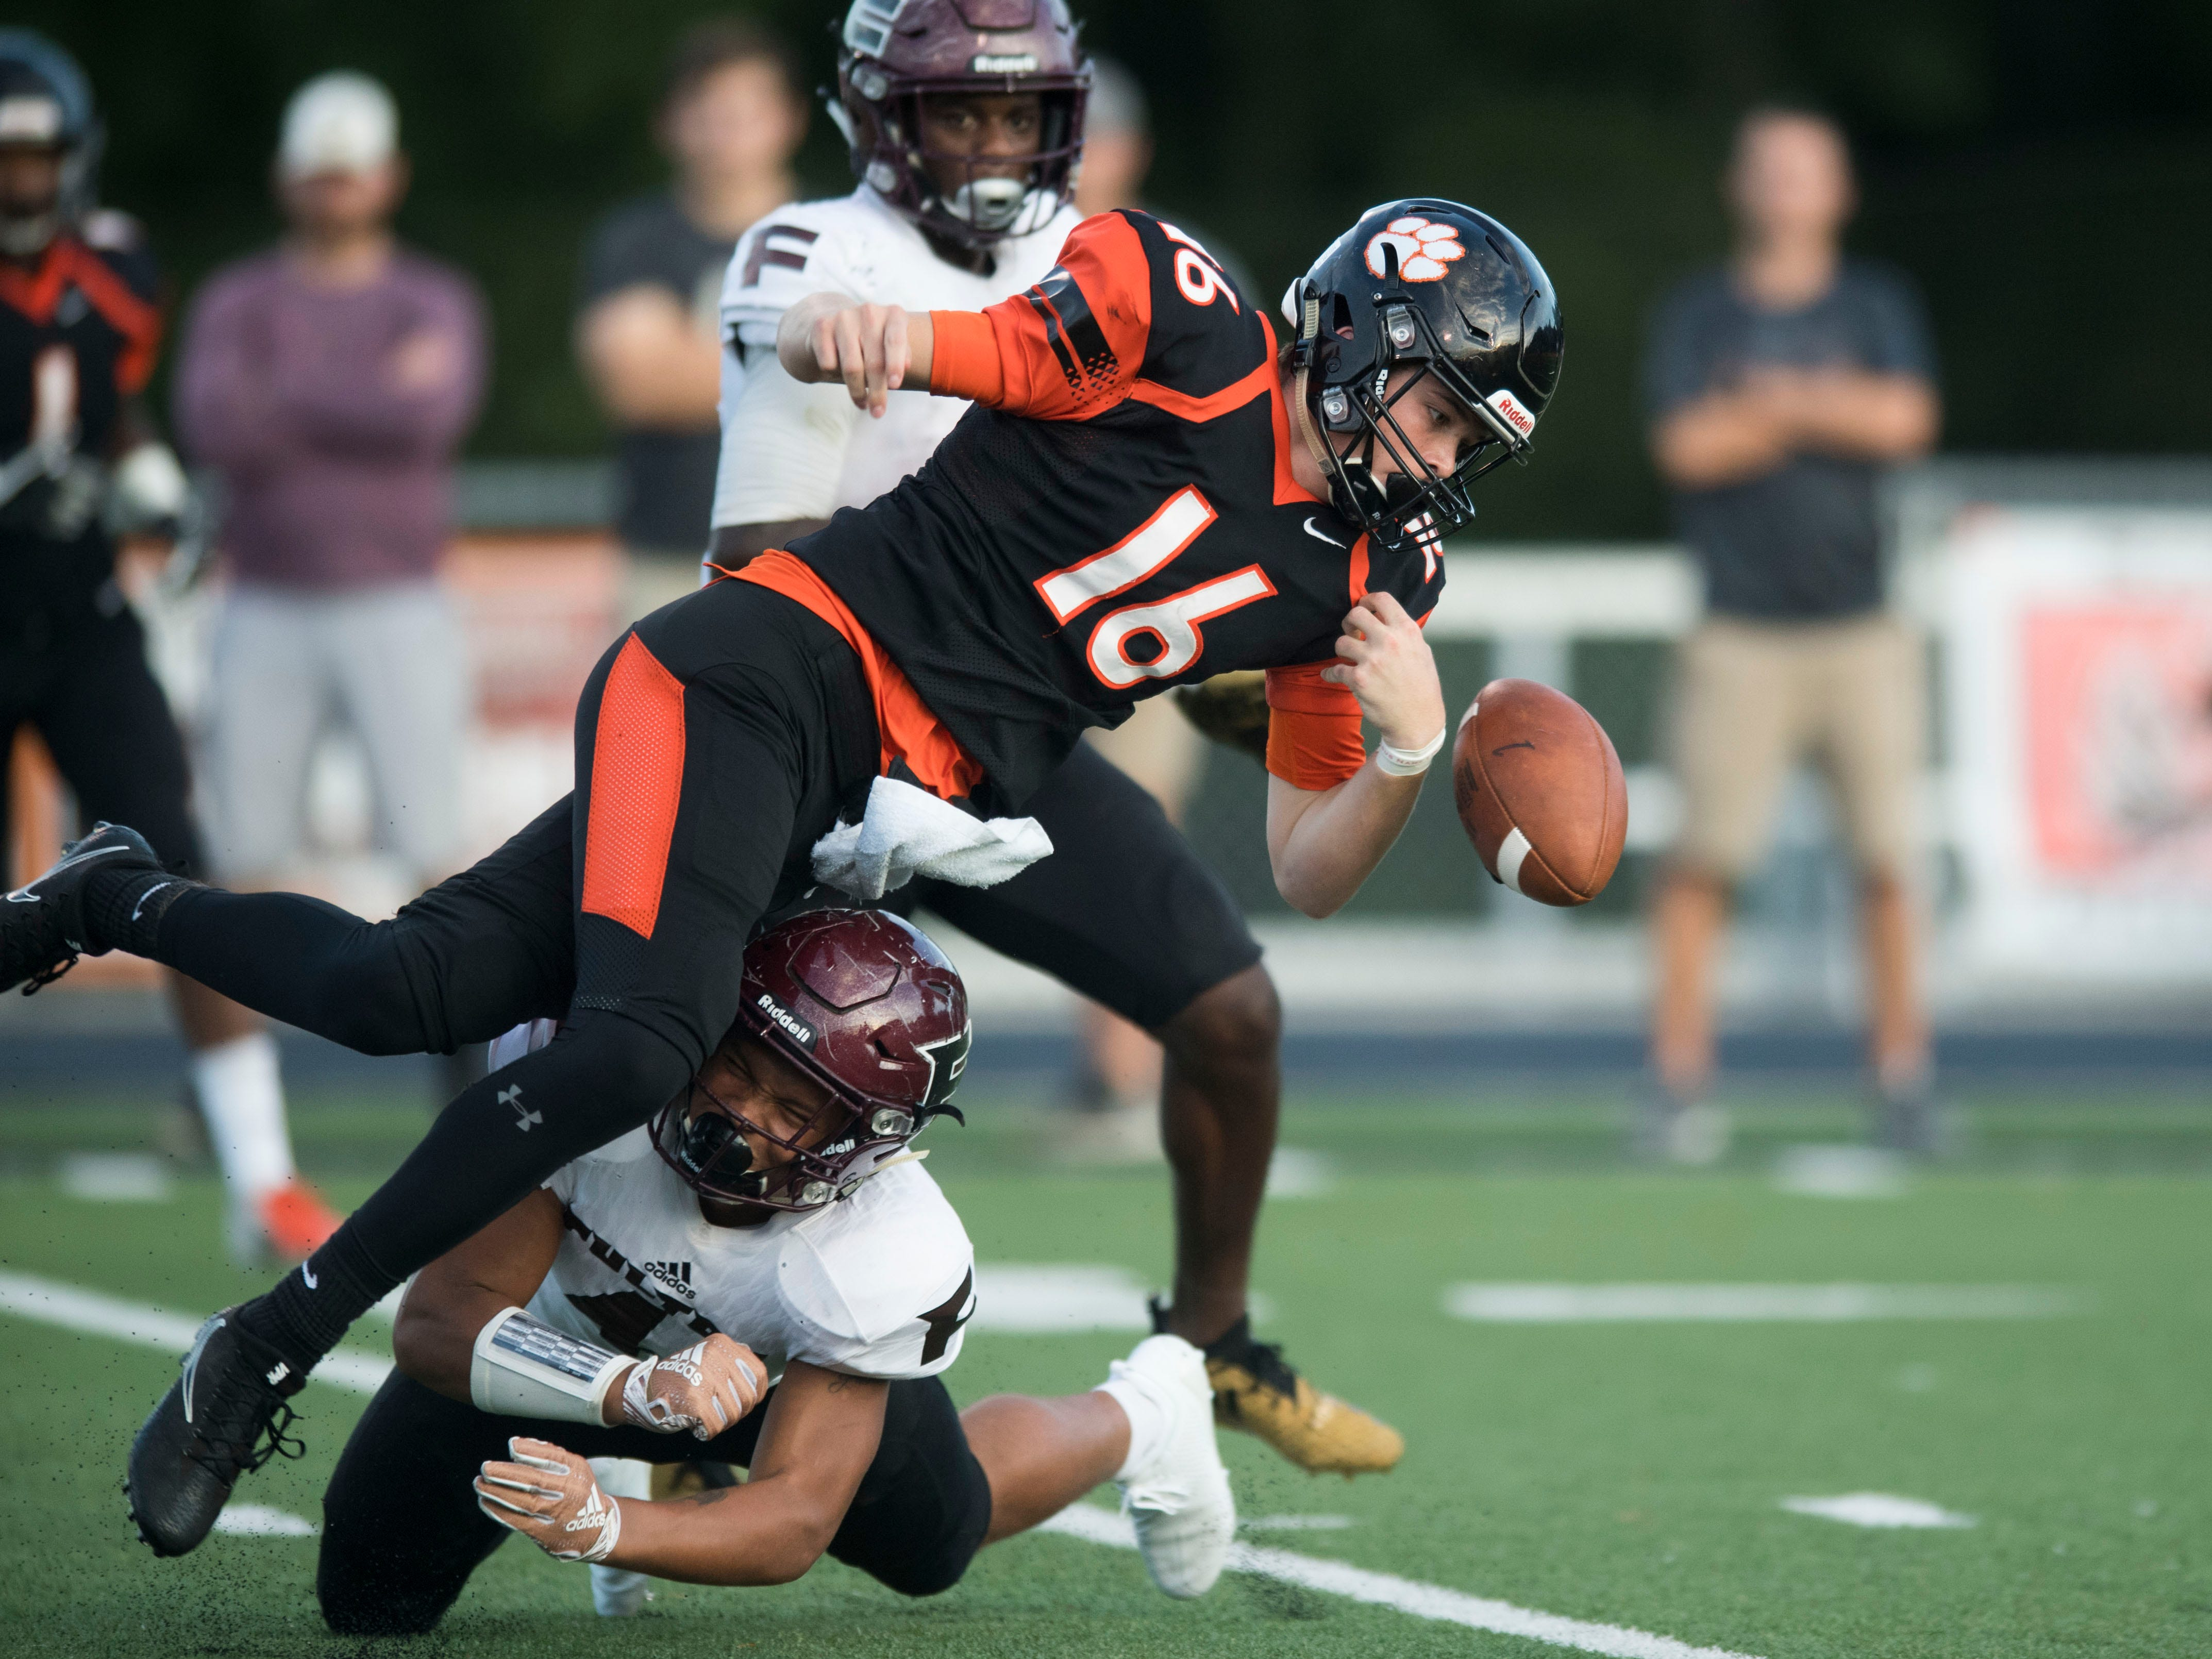 Fulton's Robquan Thomas' (4) hit caused Powell's Walker Trusley (16) to fumble the ball during the football game at Powell on Friday, August 31, 2018.